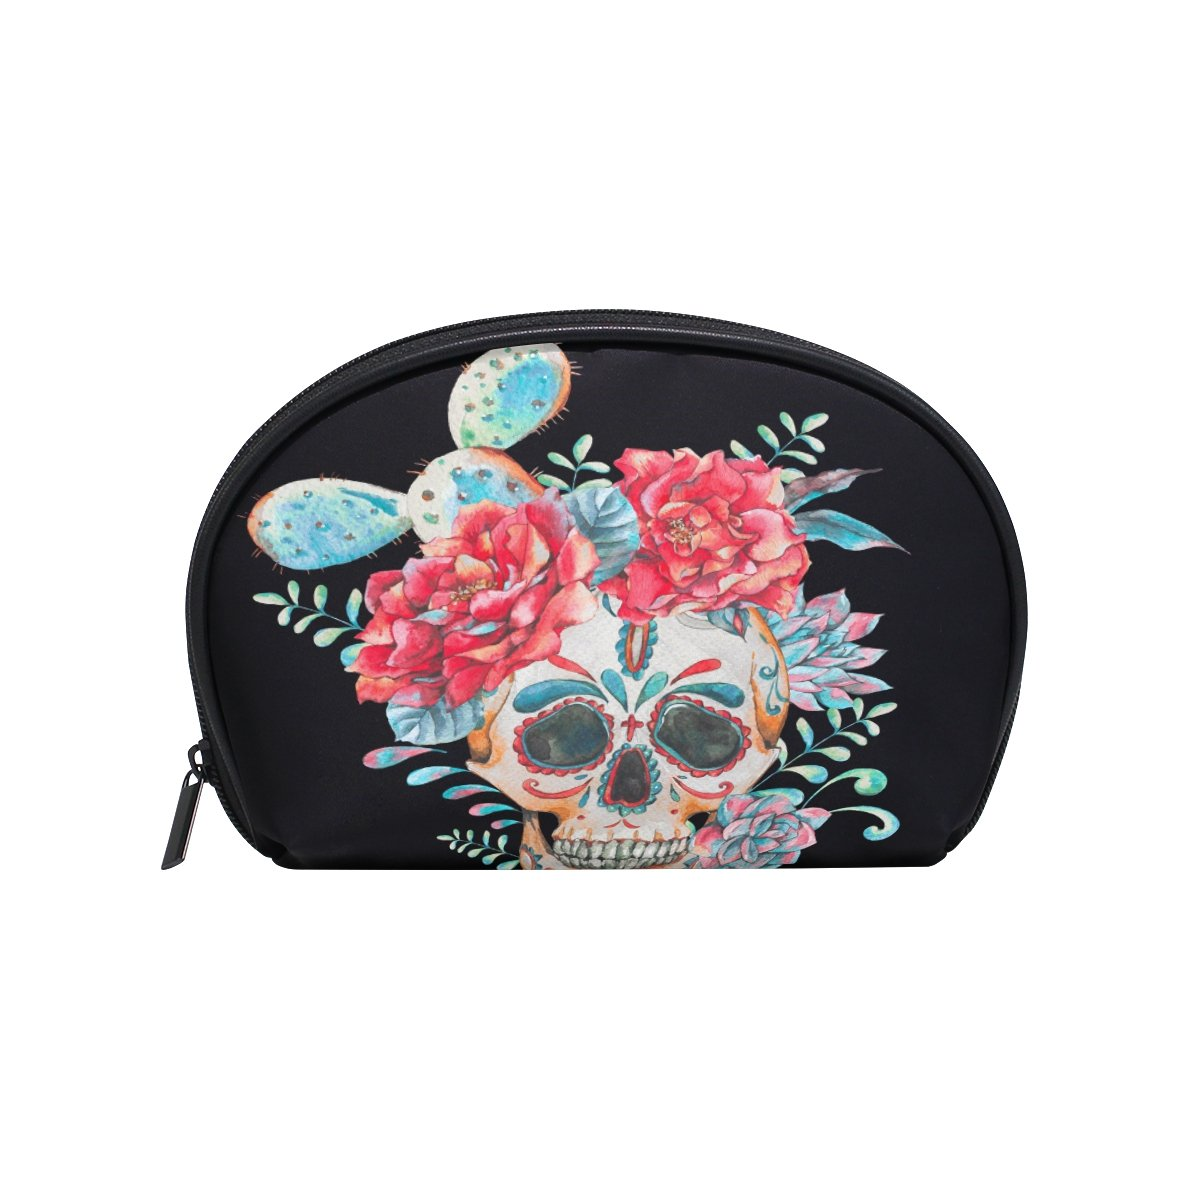 ALAZA Cactus Floral Skull Half Moon Cosmetic Makeup Toiletry Bag Pouch Travel Handy Purse Organizer Bag for Women Girls